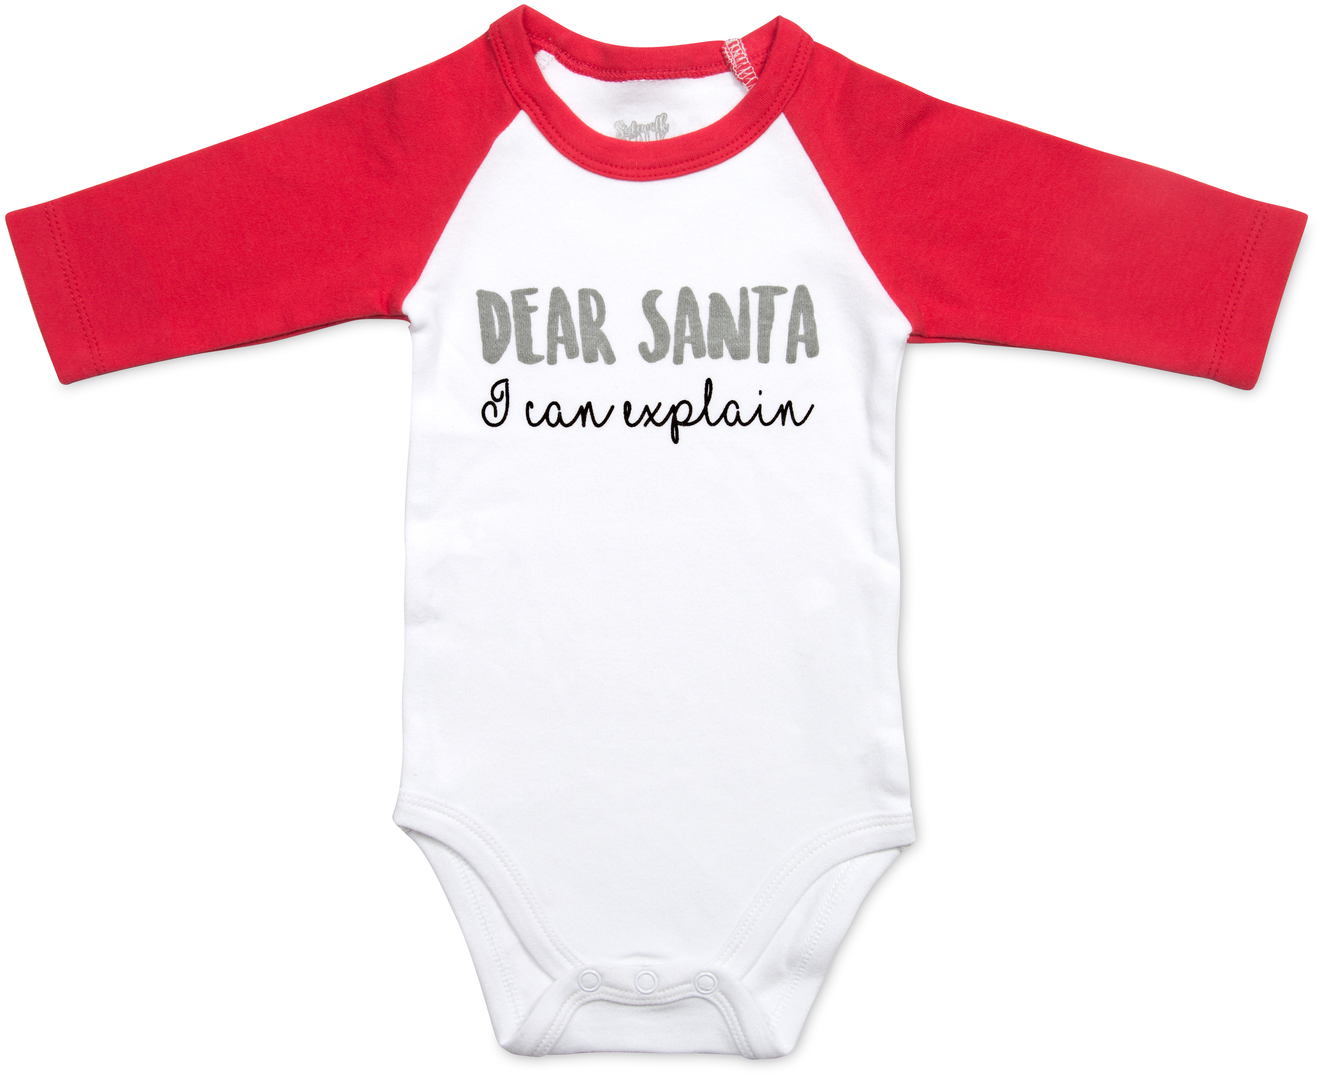 Dear Santa by Sidewalk Talk - Dear Santa - 6-12 Months 3/4 Length Red Sleeve Onesie